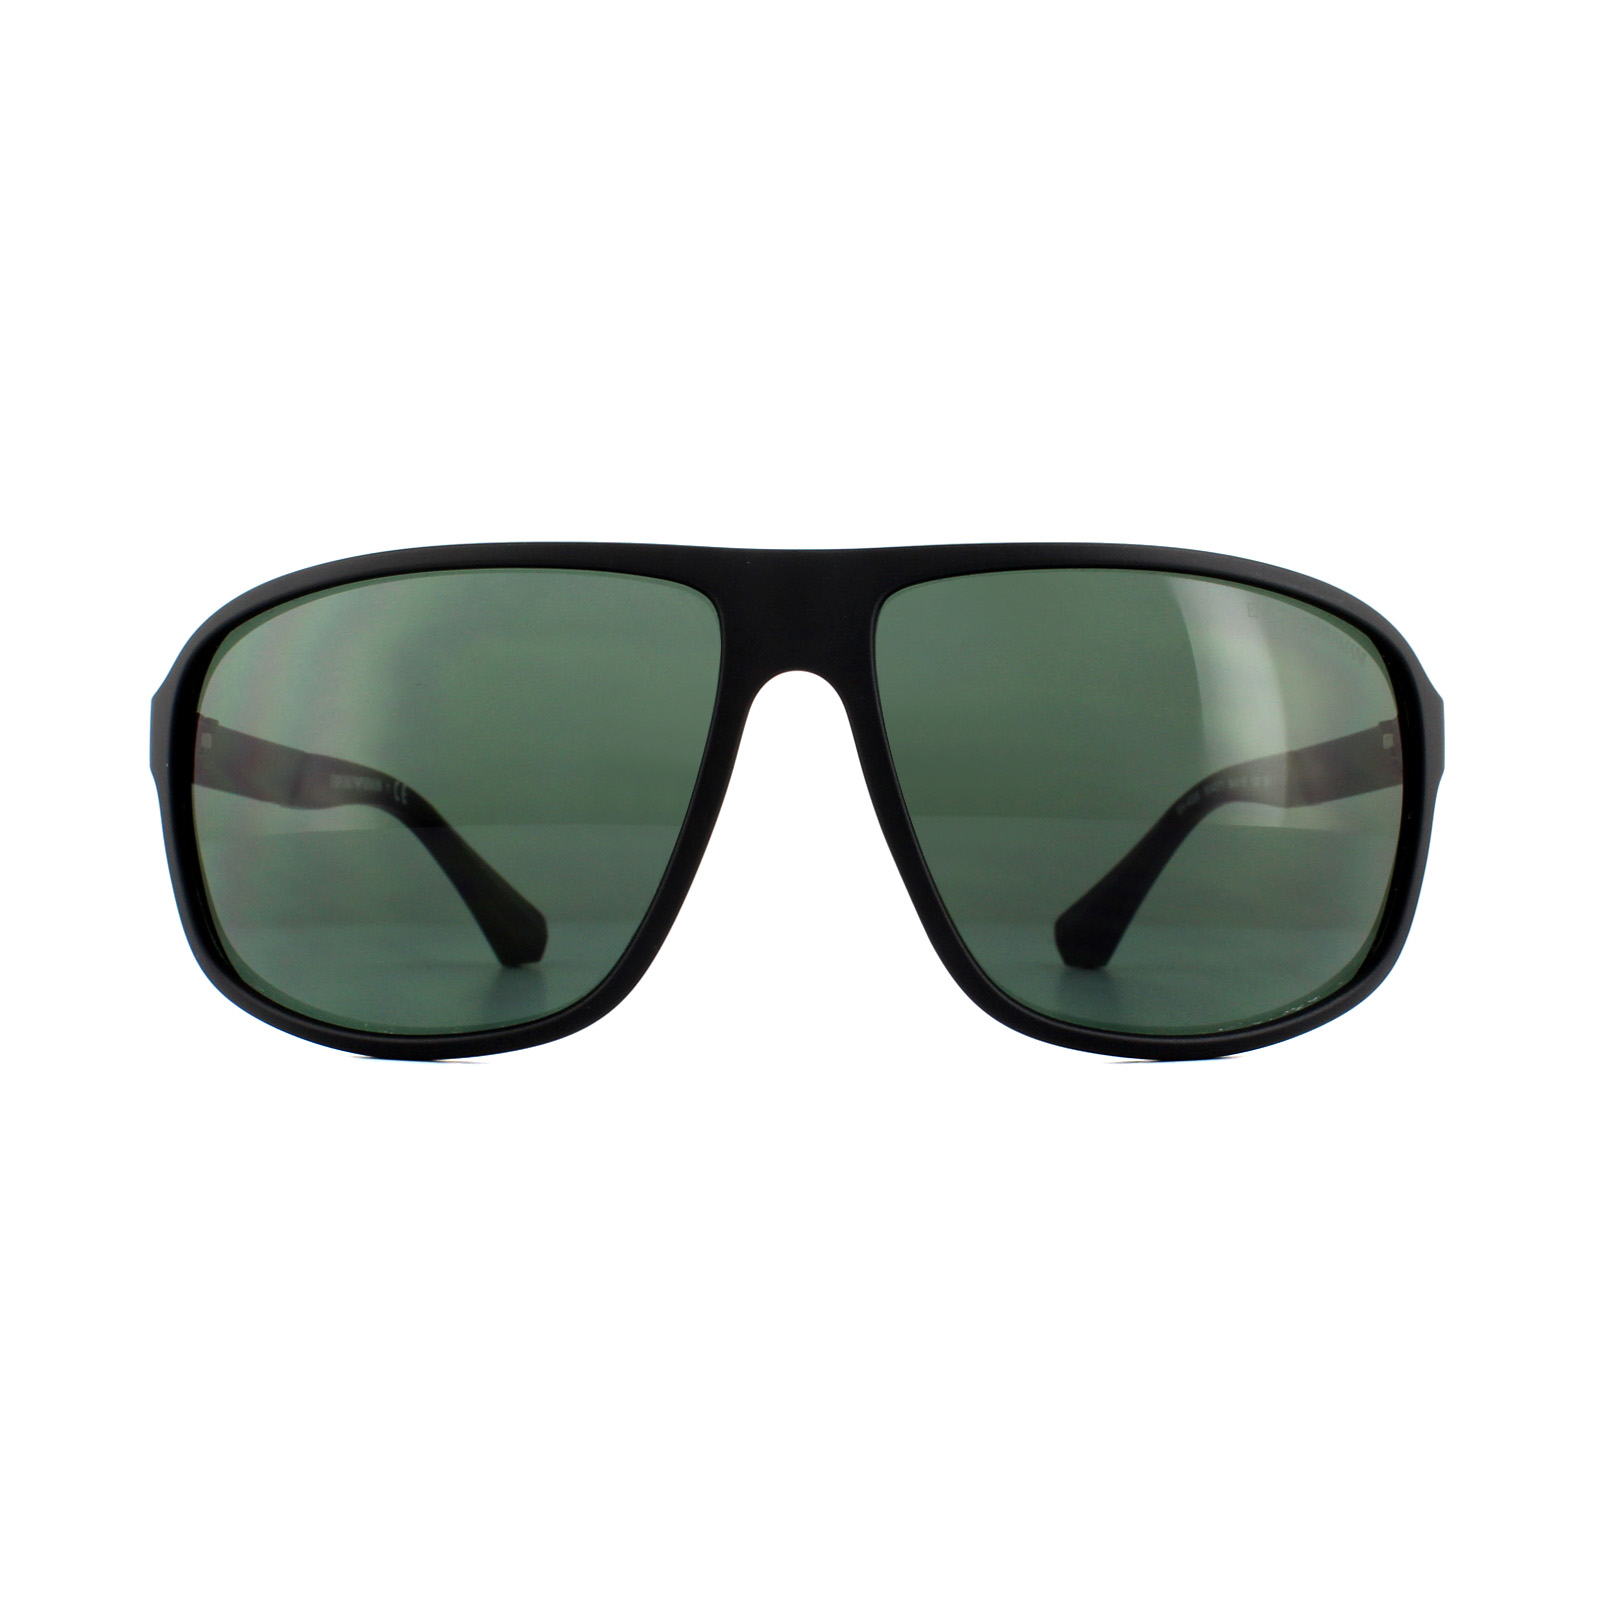 982fb8ca Details about Emporio Armani Sunglasses 4029 504271 Matte Black Green